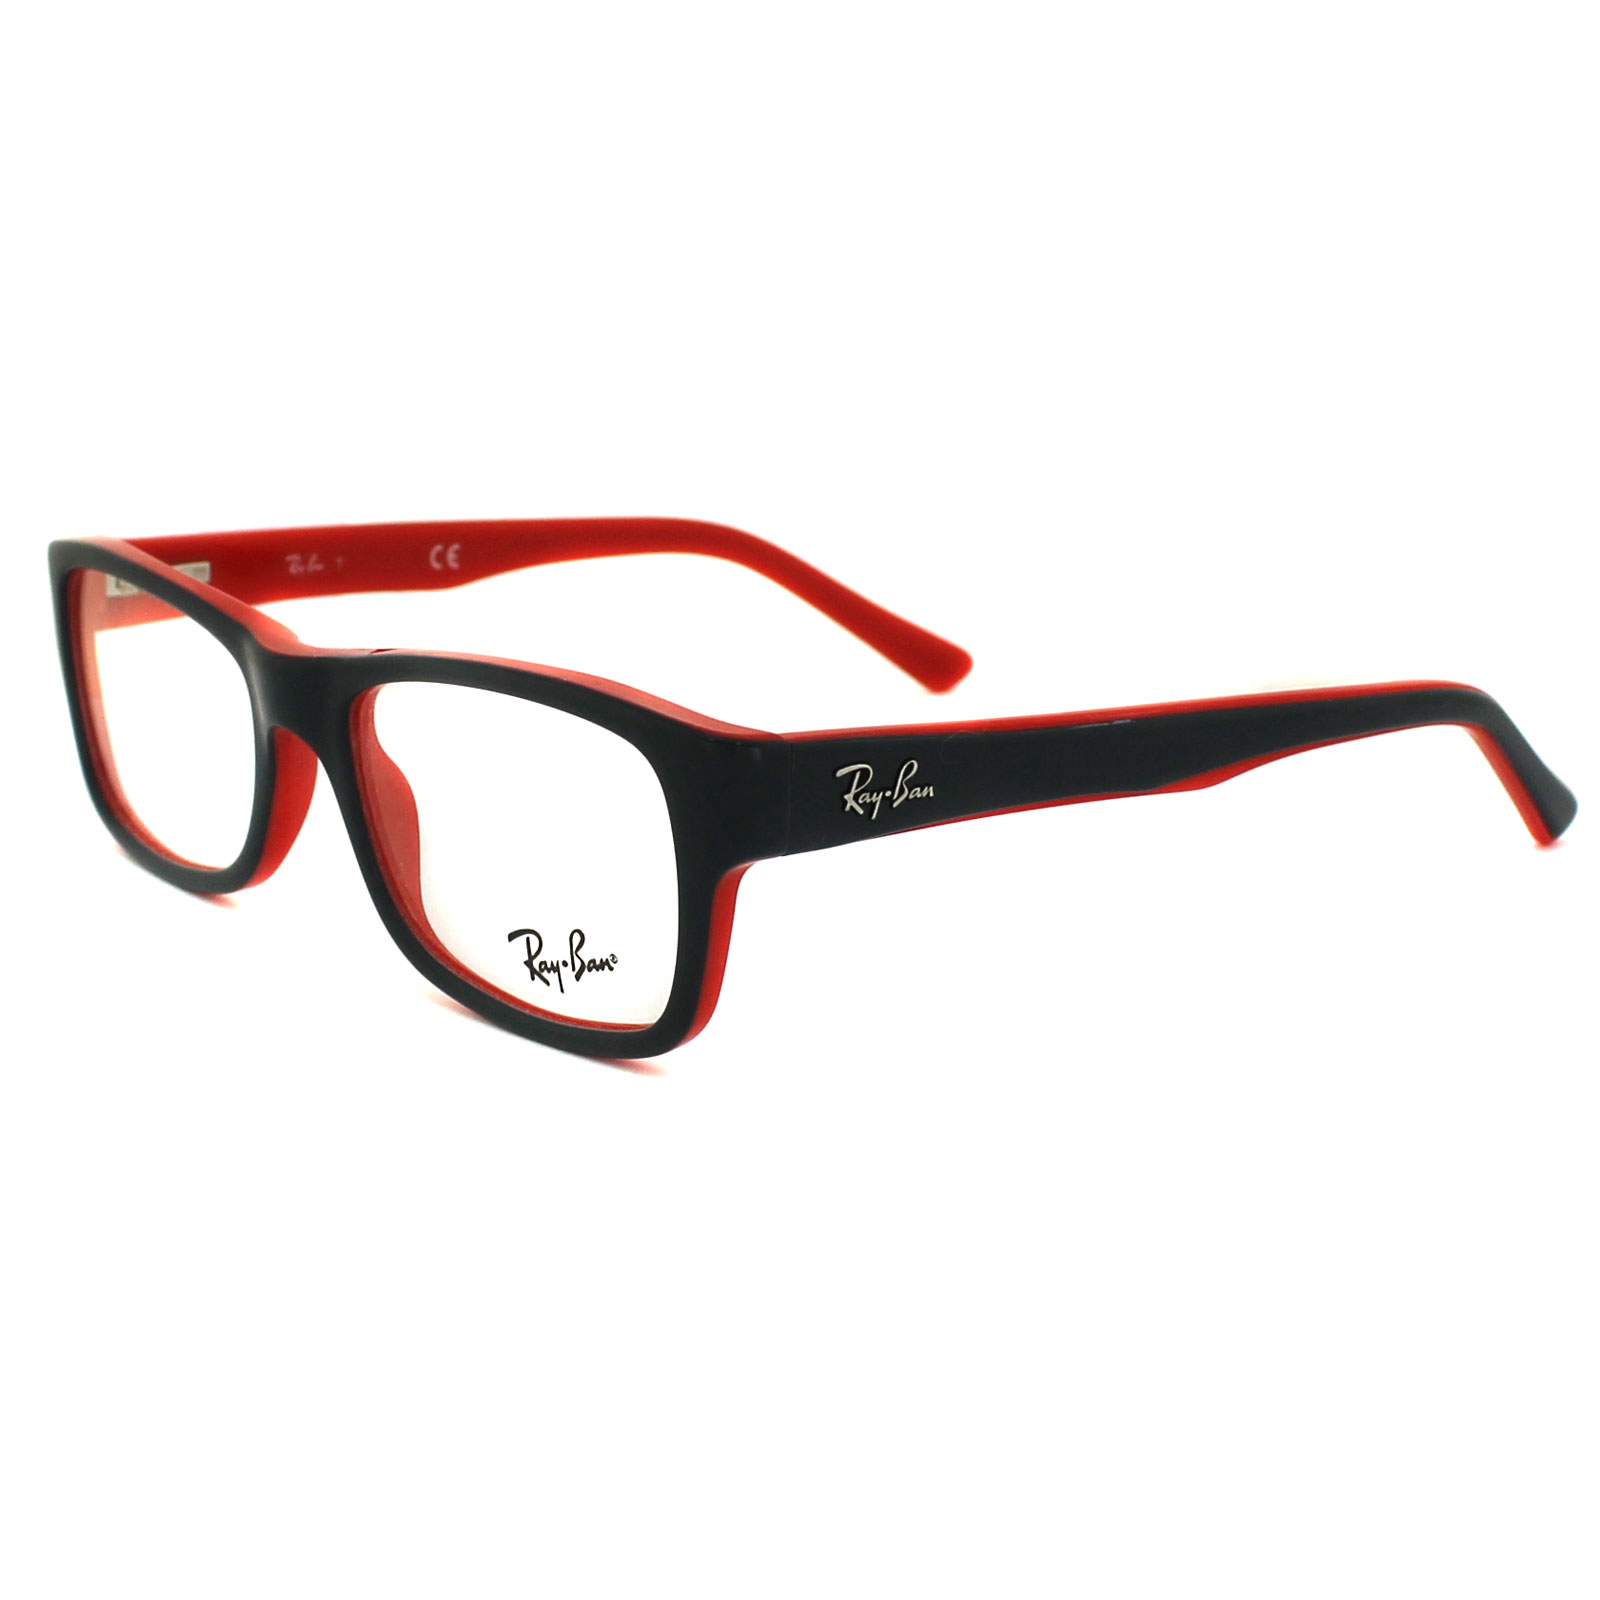 sentinel ray ban glasses frames 5268 5180 top grey on red 50mm